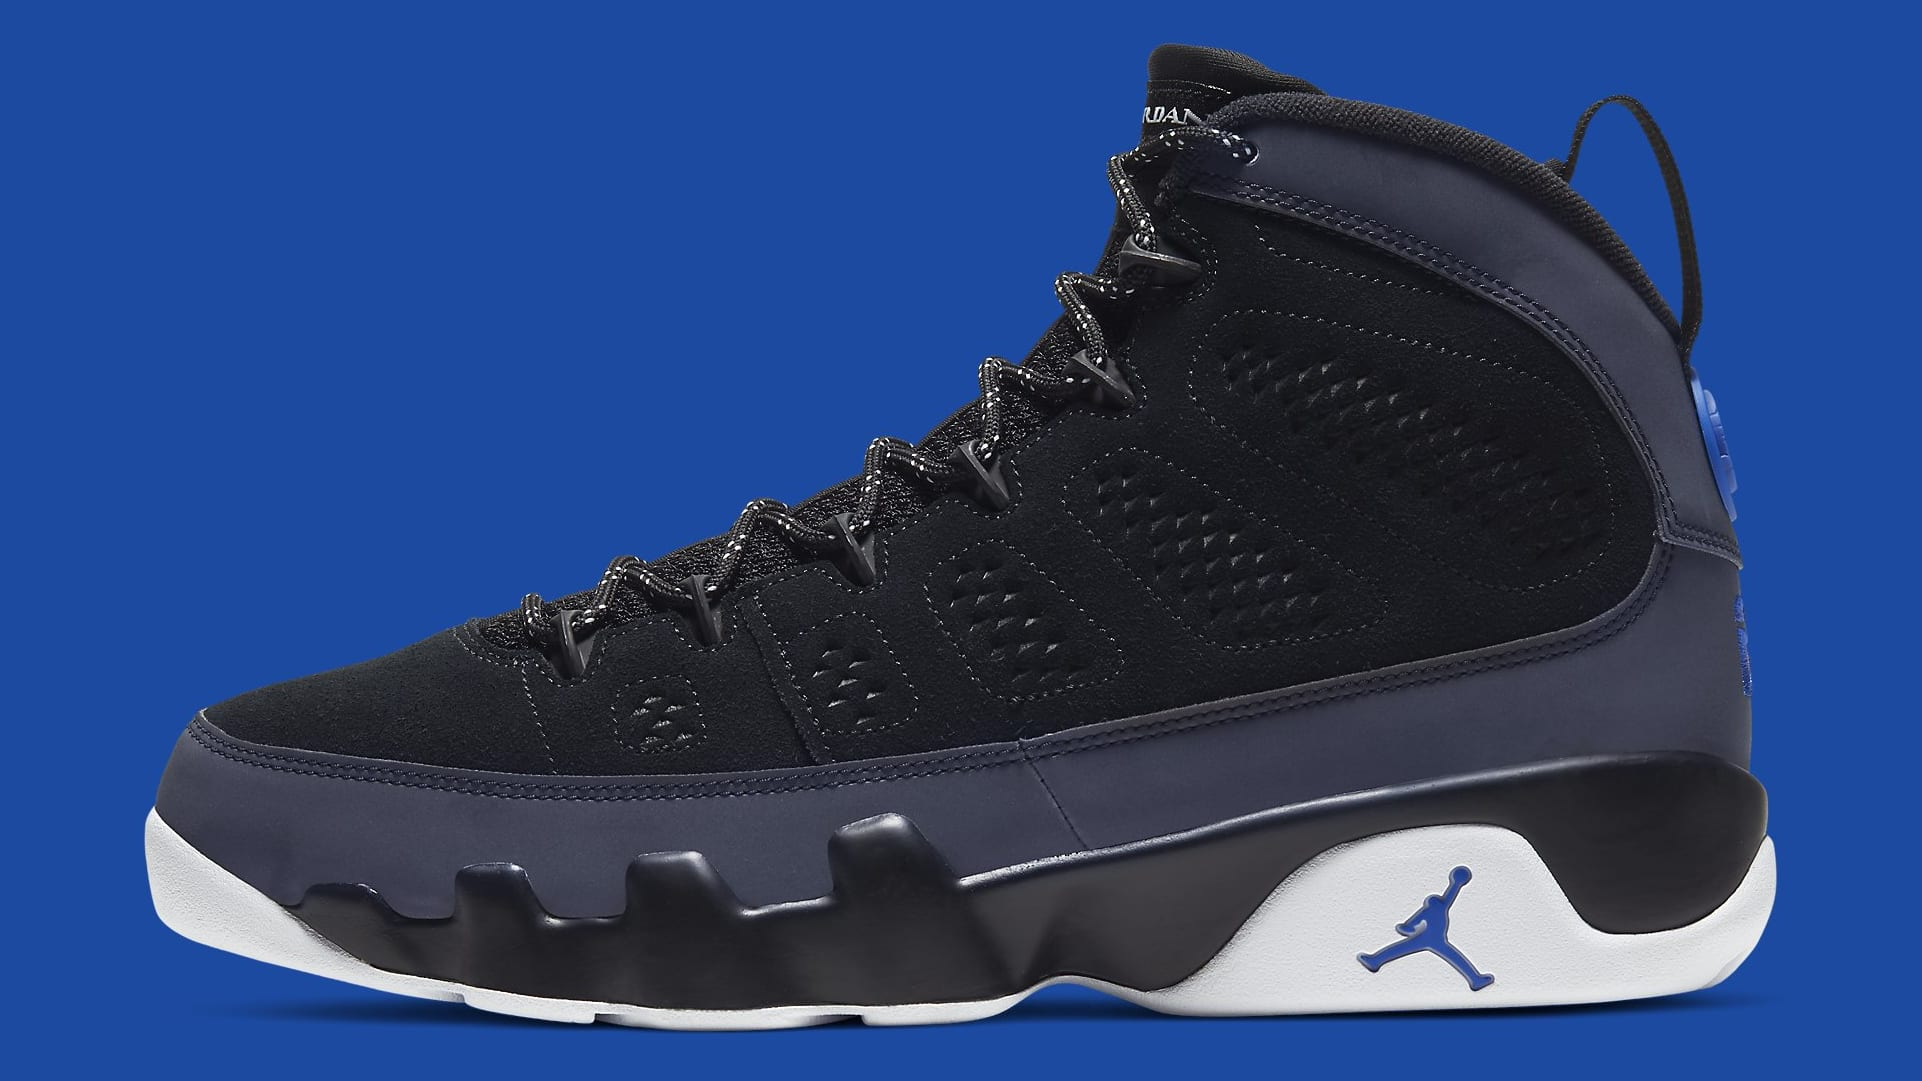 Air Jordan 9 Racer Blue Release Date CT8019-024 Profile